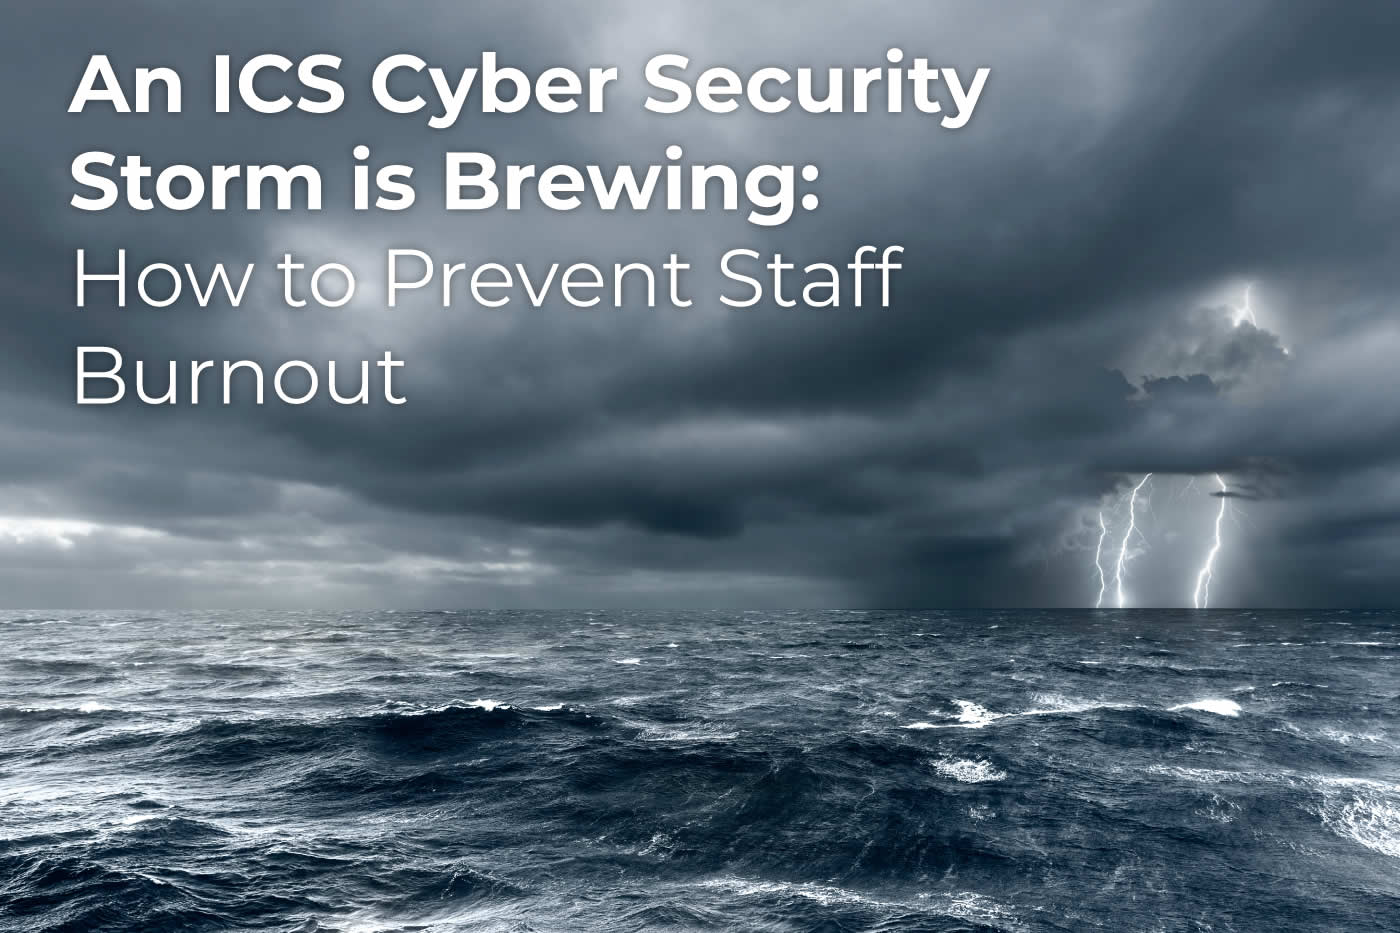 An ICS Cyber Security Storm is Brewing: How to Prevent Staff Burnout